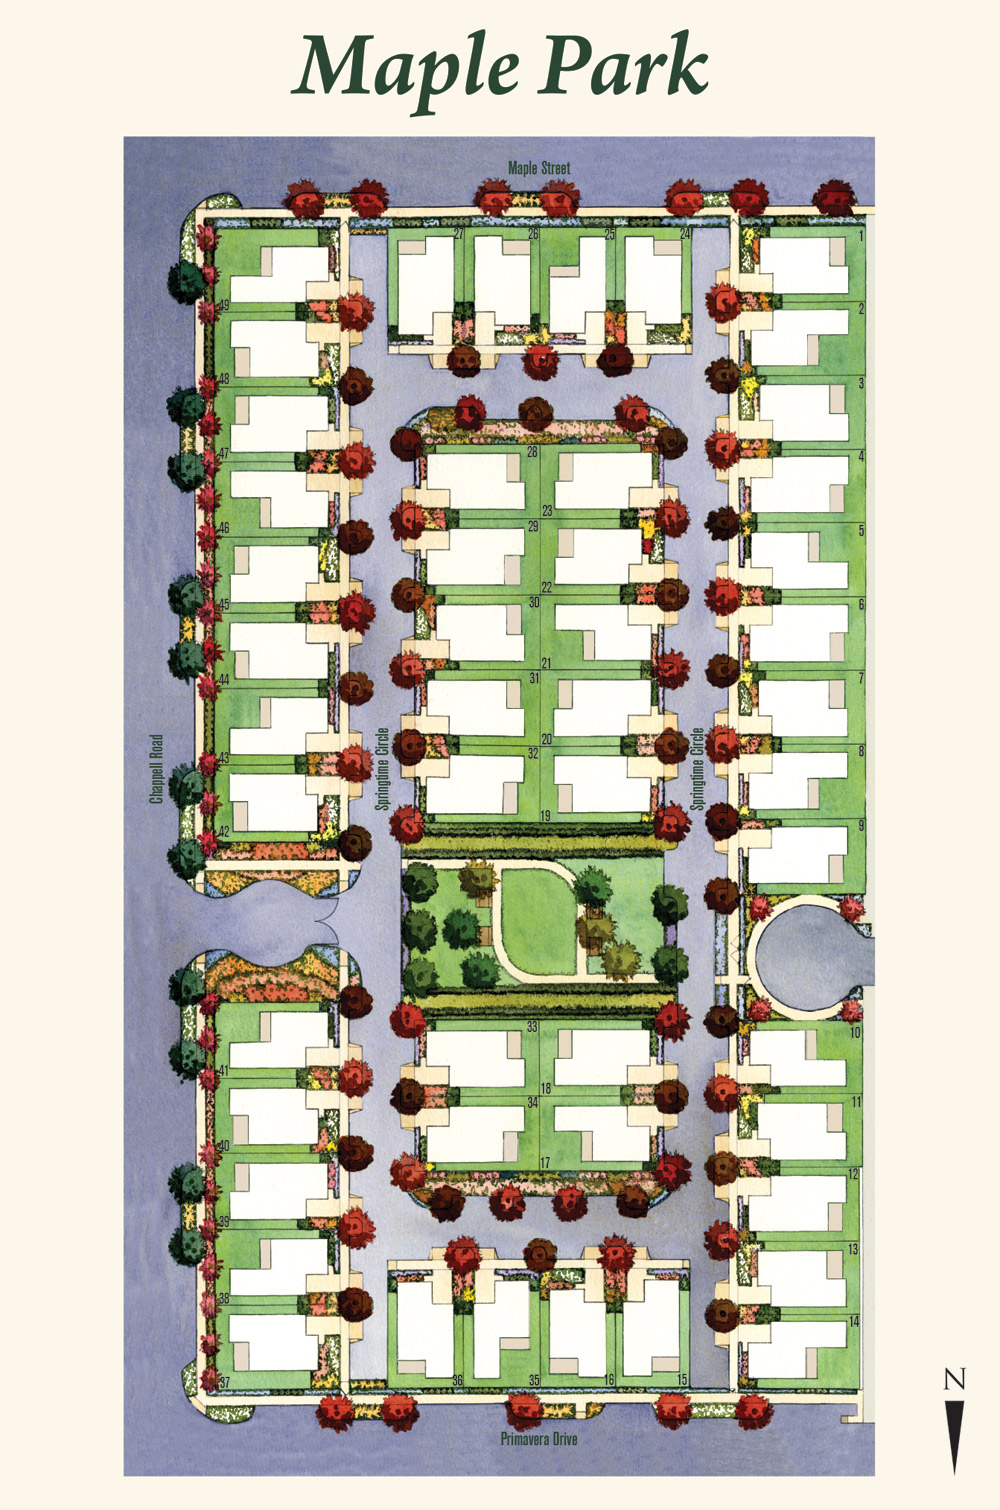 Maple-Park-Site-Plan-R2A-R1